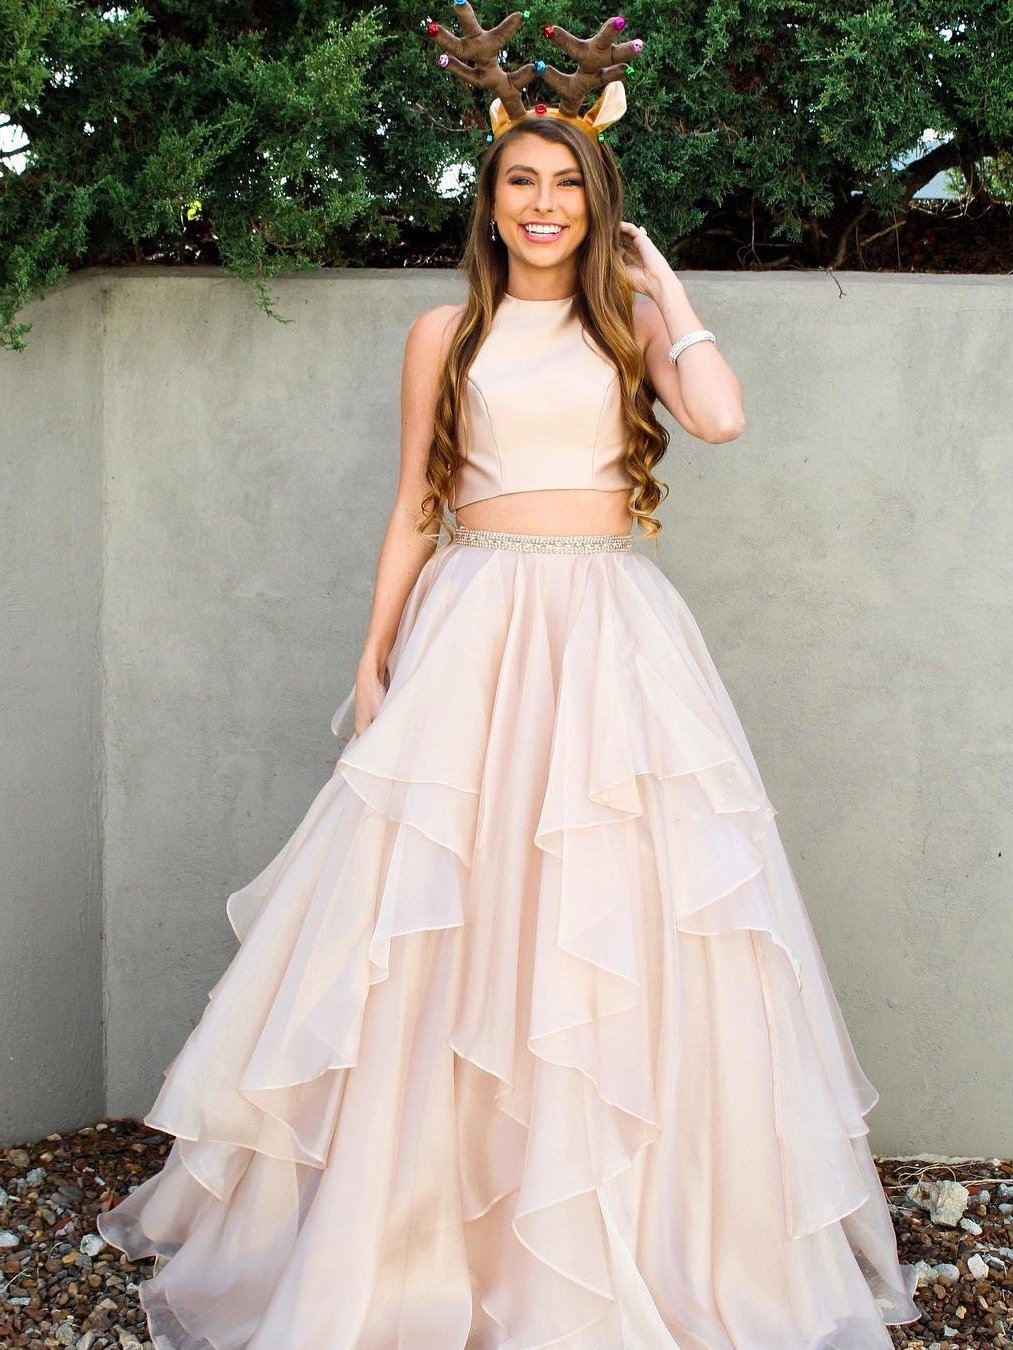 dc35c3c751a Two Piece Prom Dresses A-line Scoop Floor-length Long Sparkly Chic Prom  Dress